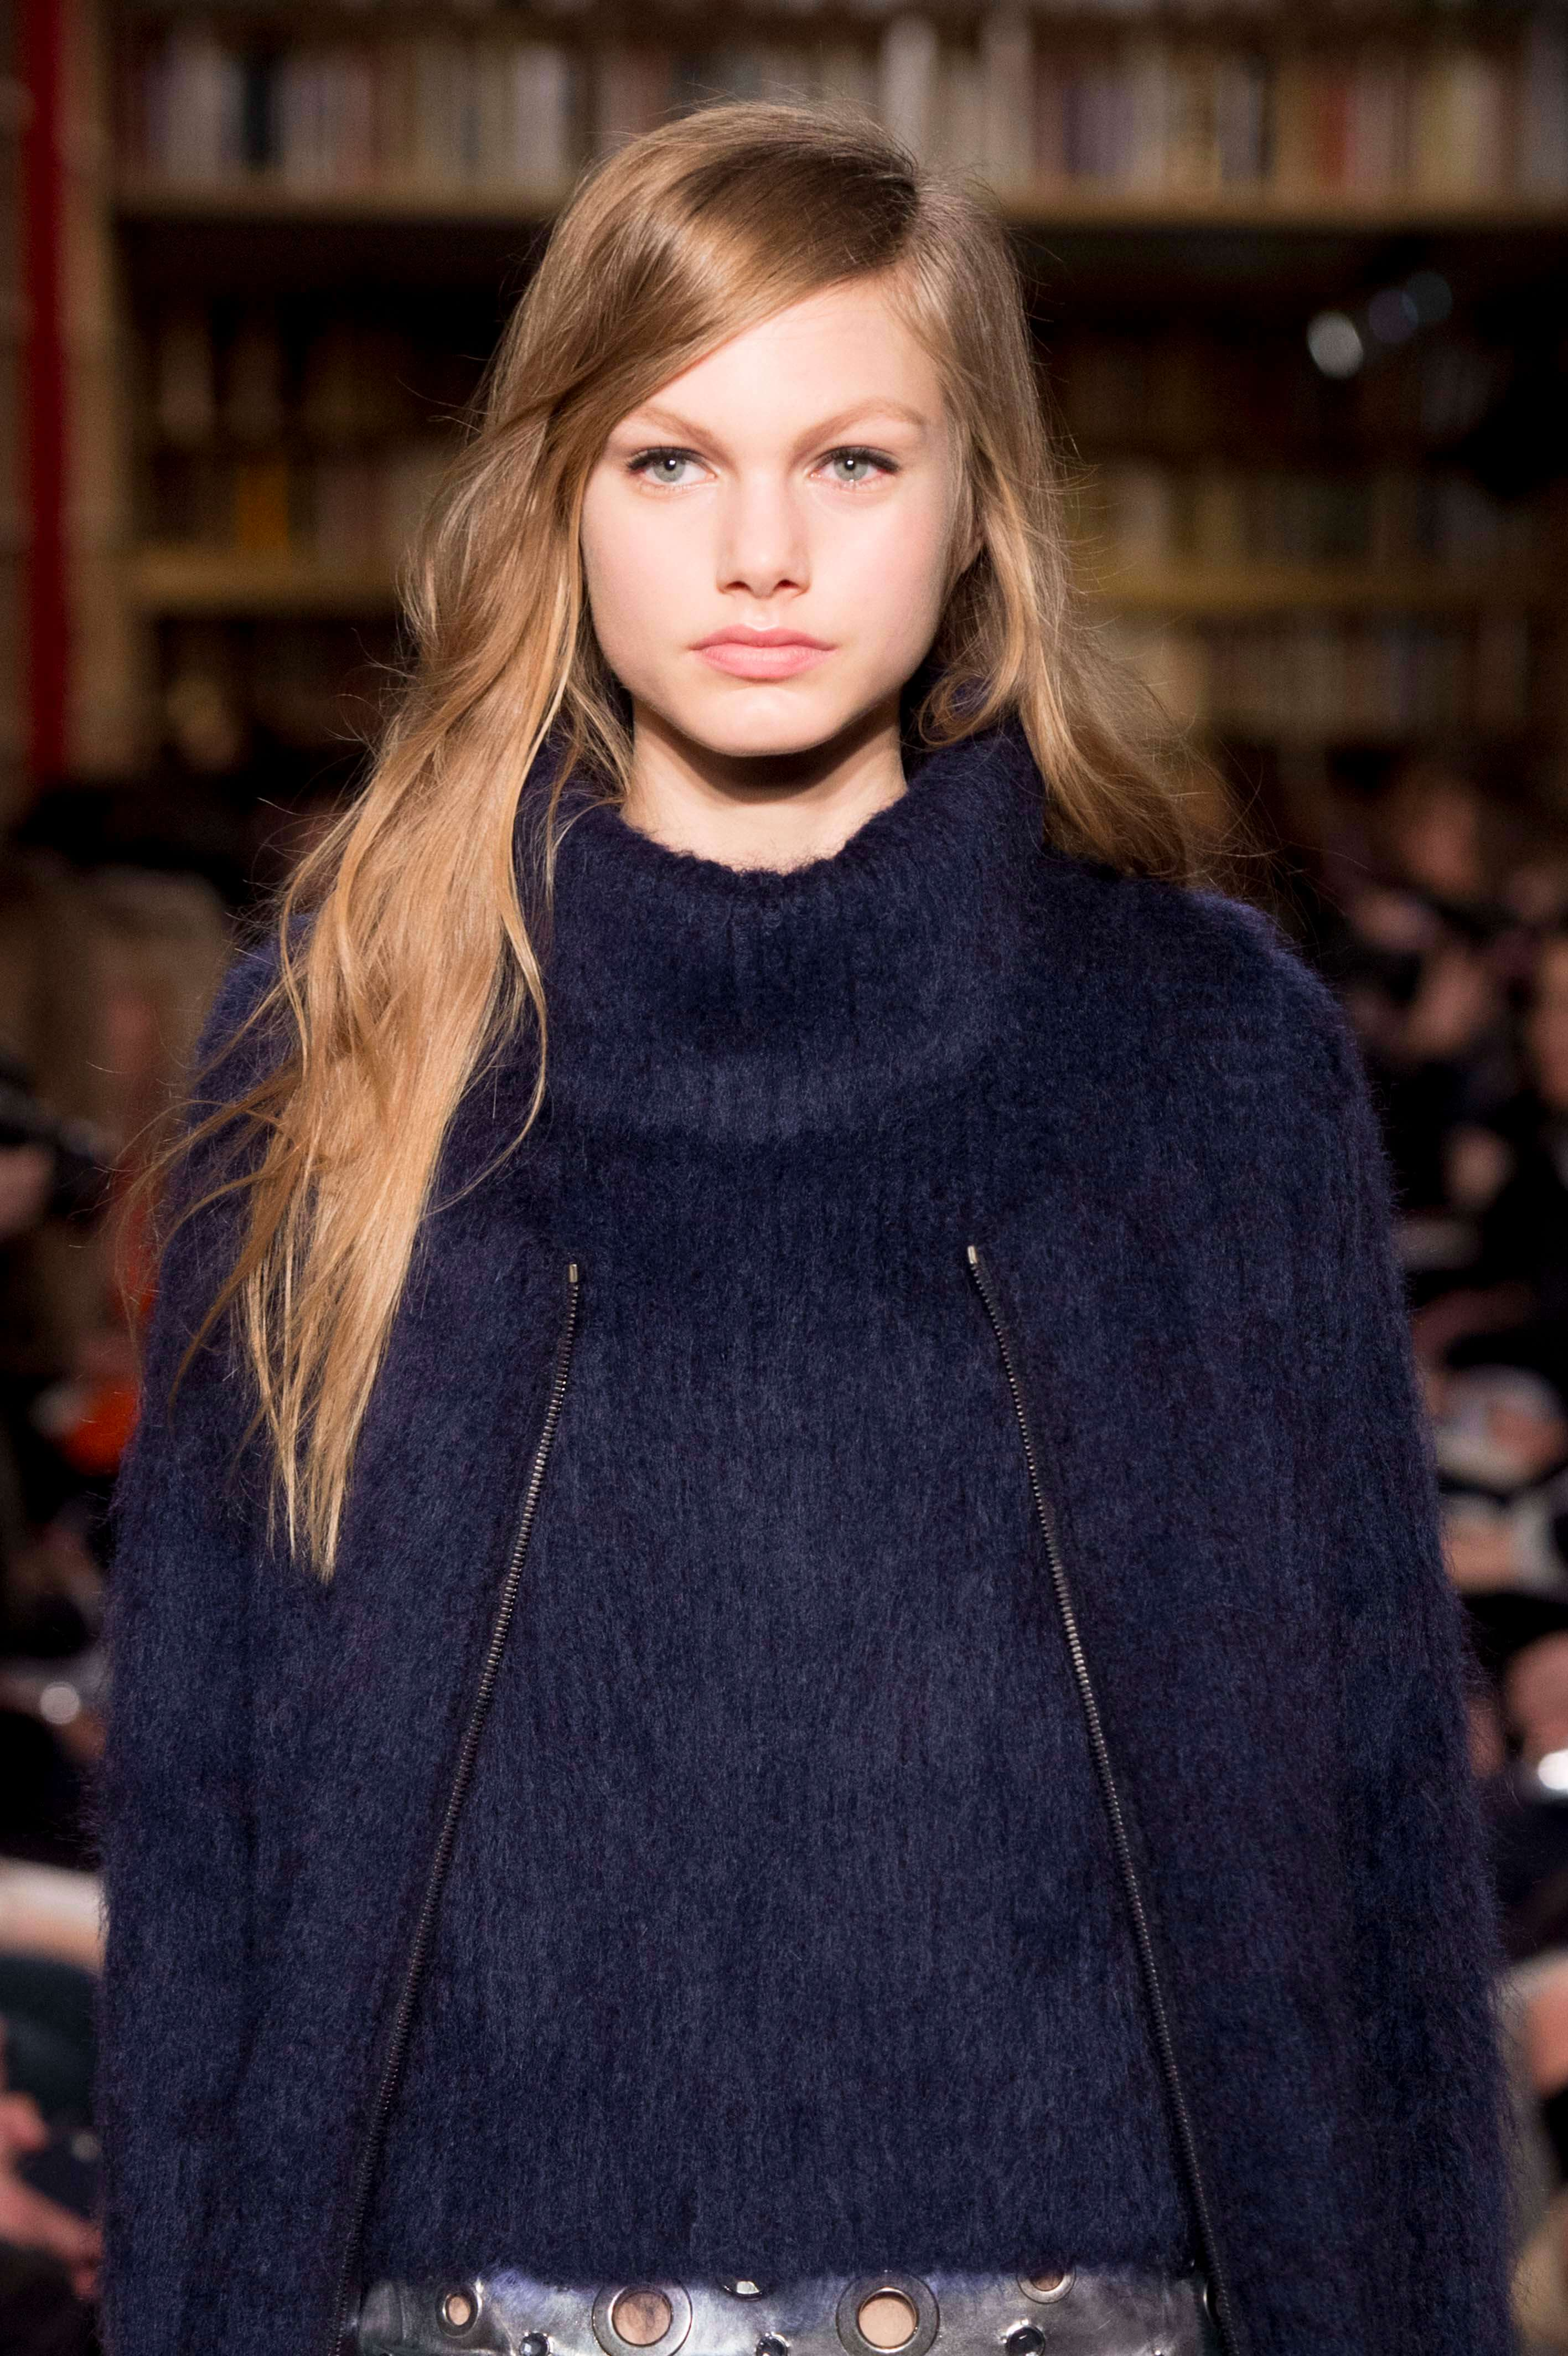 model with long blonde hair and a side swept fringe